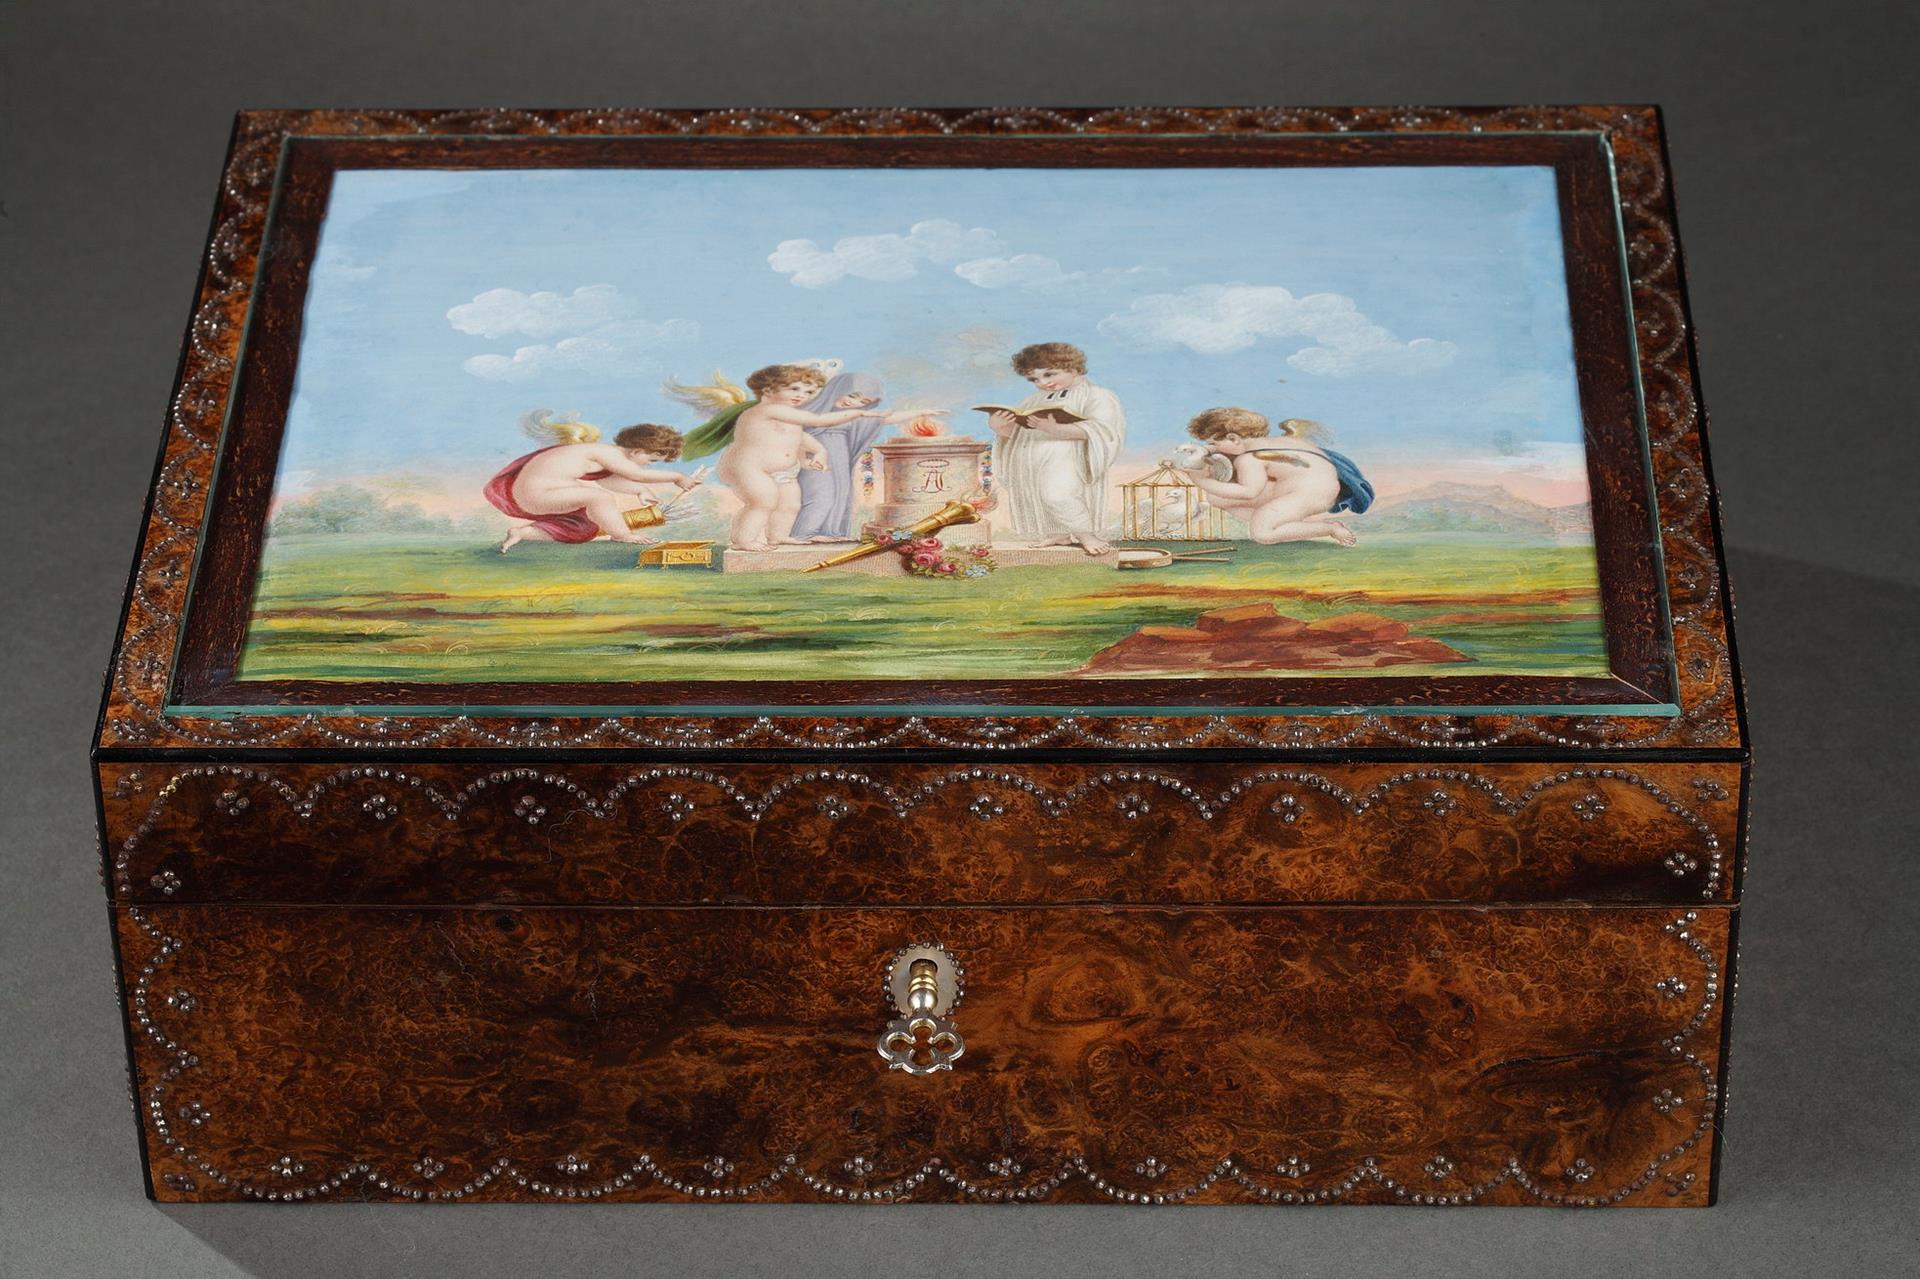 Early 19th-century sewing-set in amboine wood, gold, mother-of-pearl. <br> Circa 1820